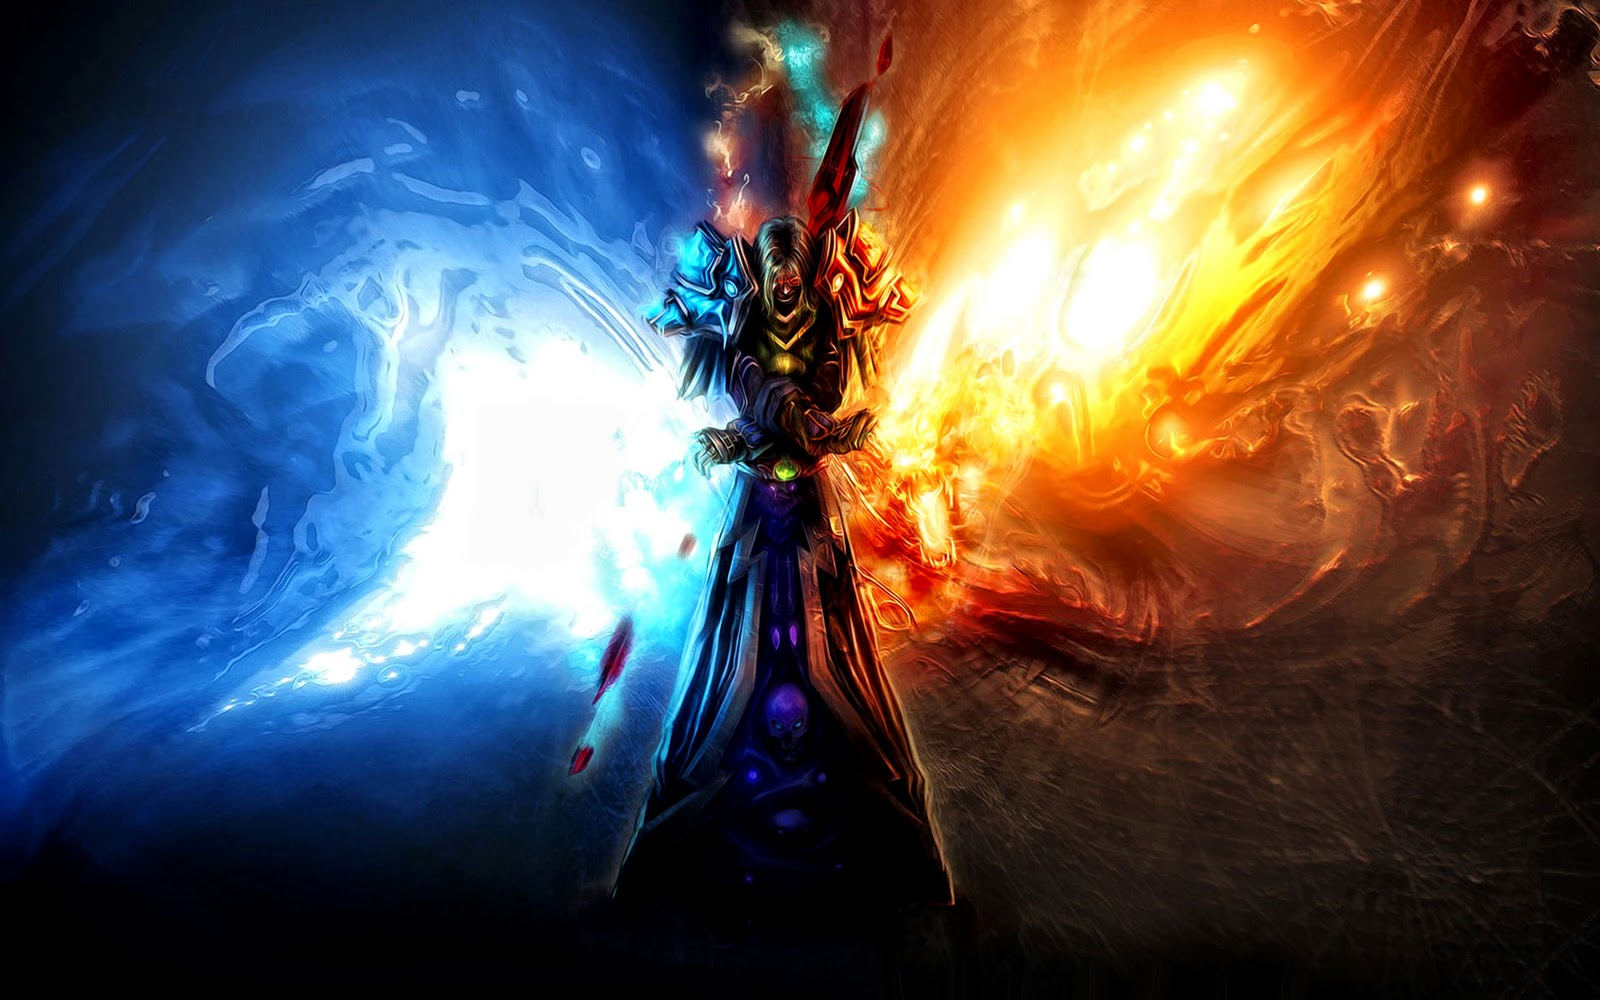 http://3.bp.blogspot.com/-0Syh9hkQaq4/T1kMd2WBpVI/AAAAAAAAAR8/dHSidtUD1zA/s1600/desktop-fantasy-wallpapers-hd-amazing-fire-and-ice.jpg